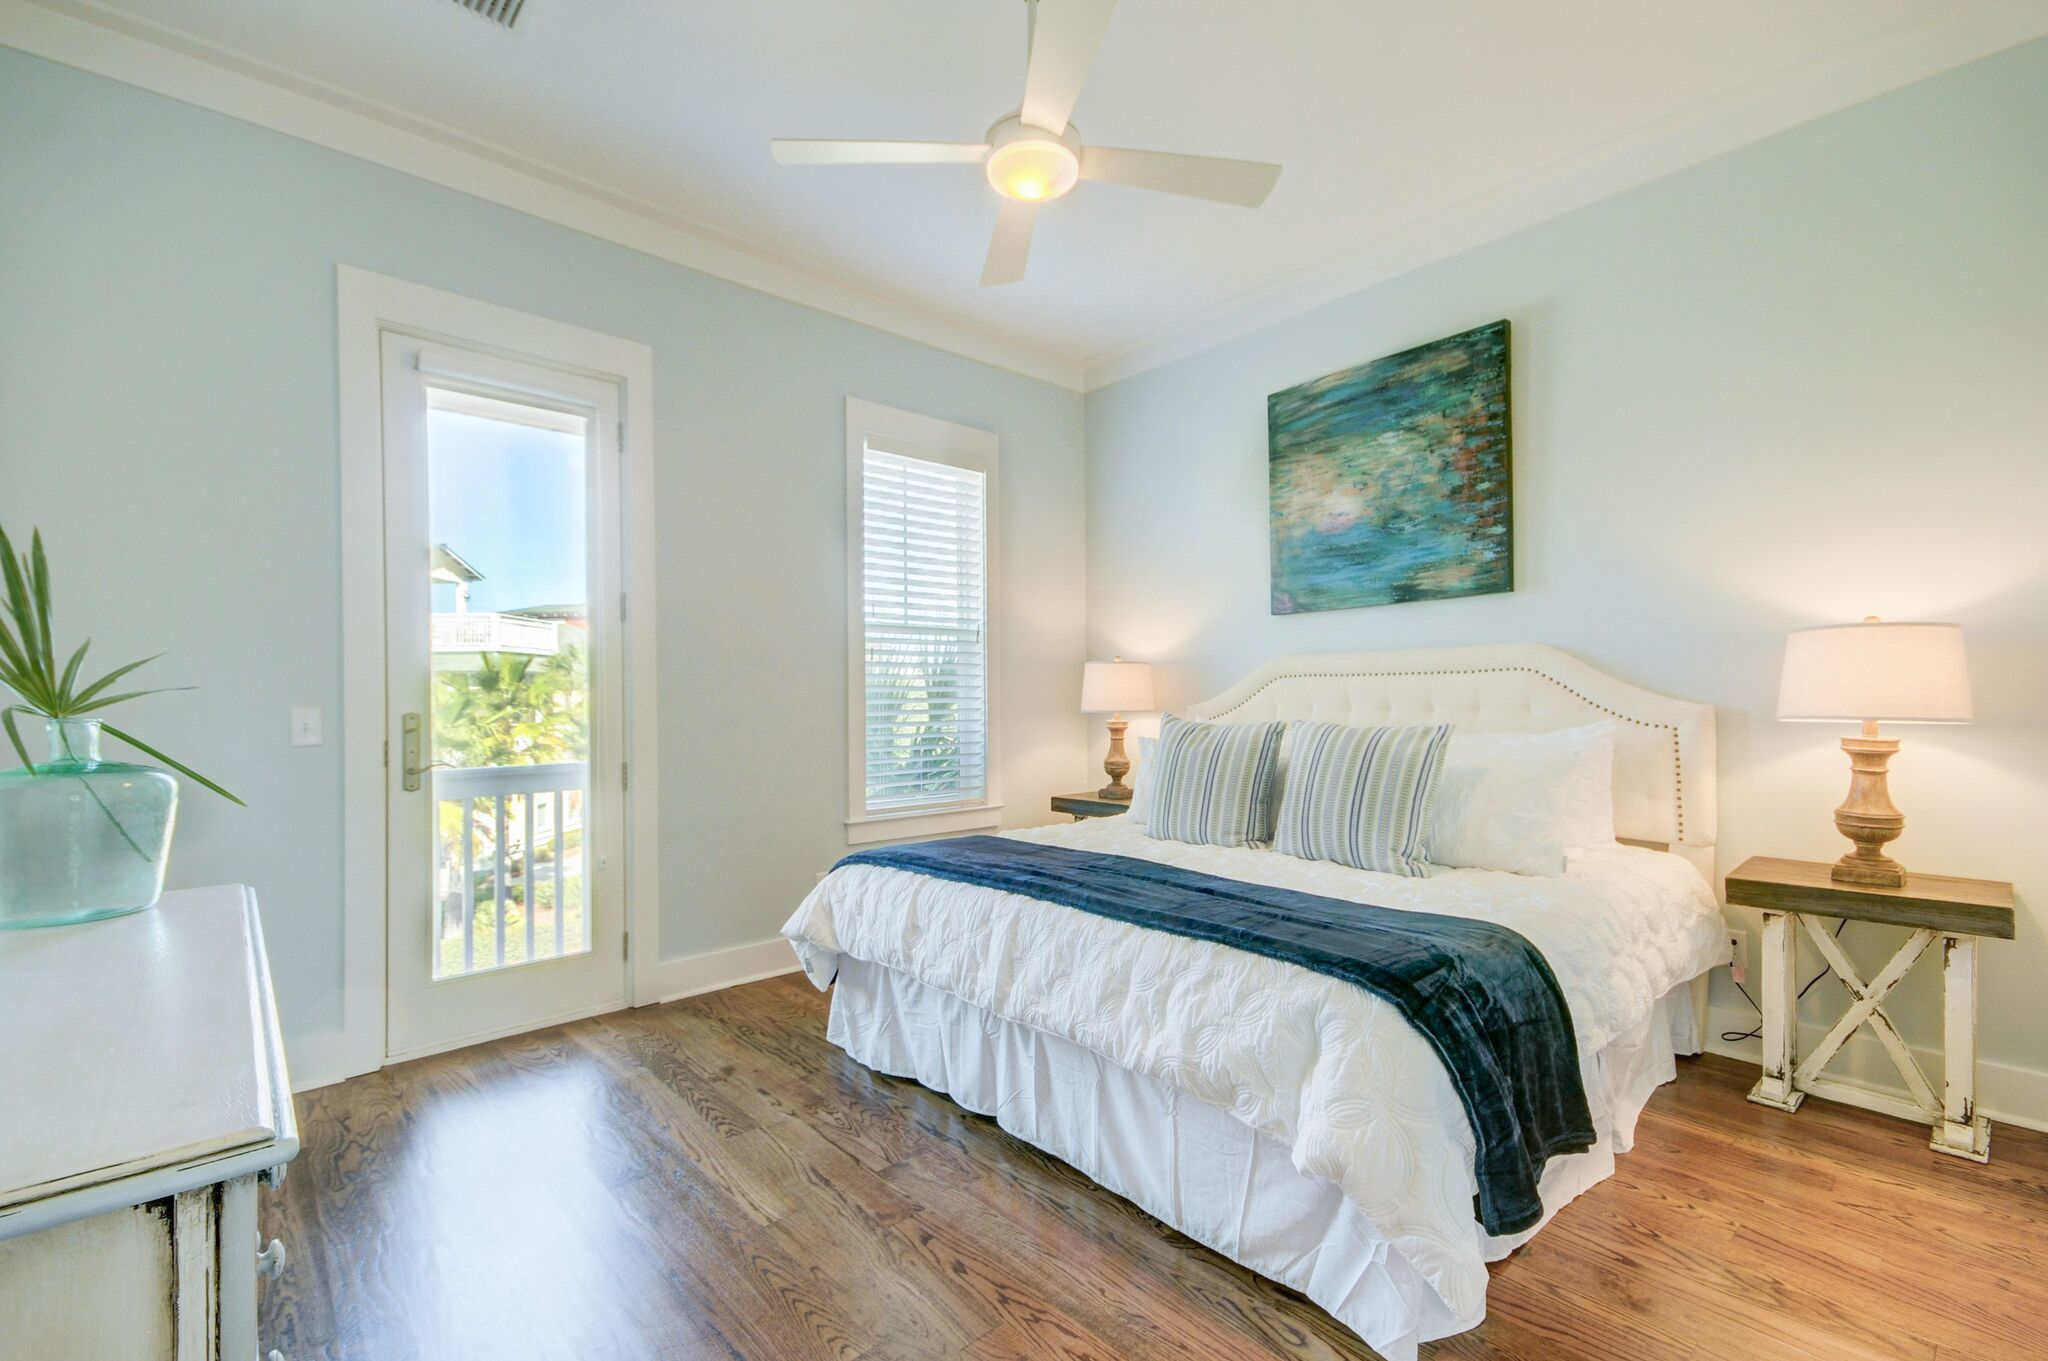 2nd Floor King Bedroom with 42 inch flat screen TV and shared bathroom access